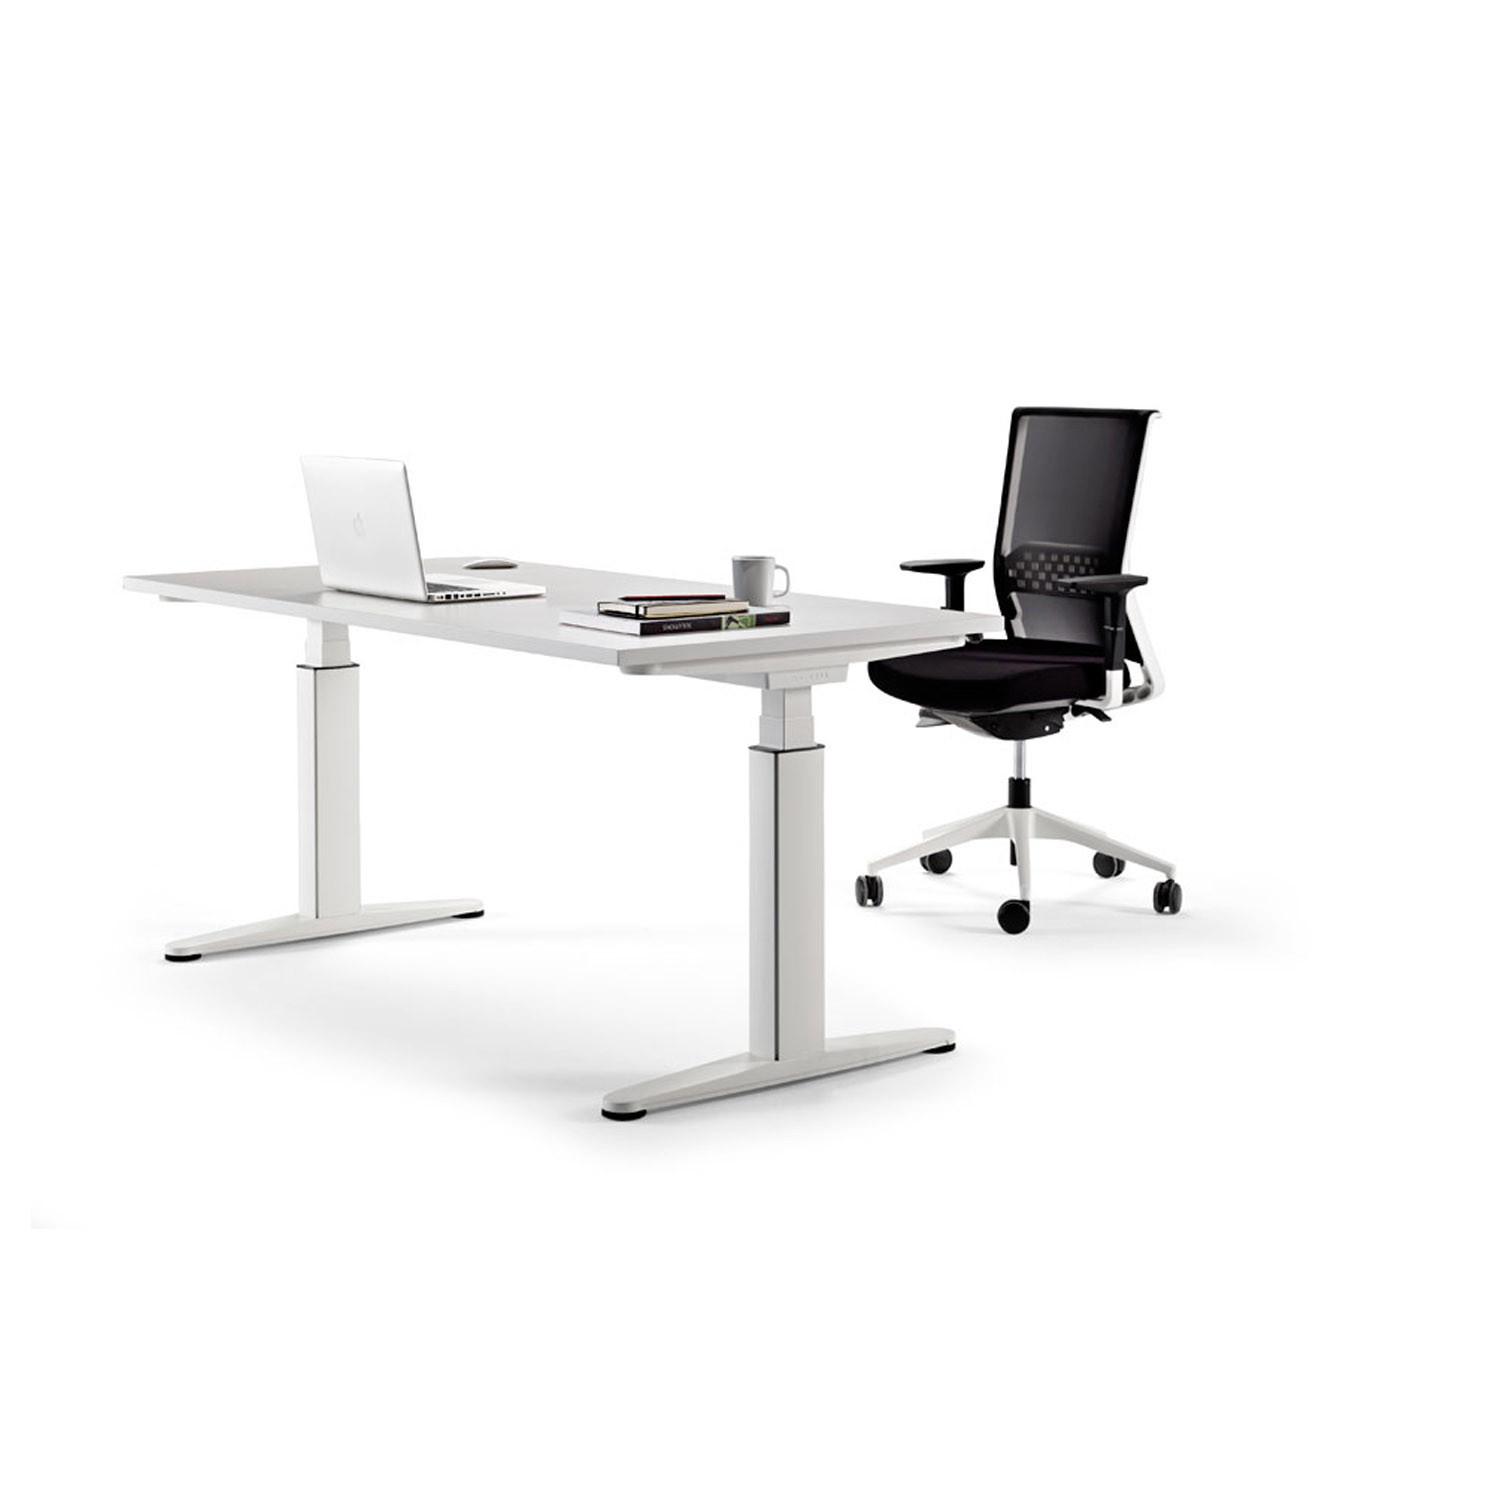 Mobility Height-Adjustable Desk